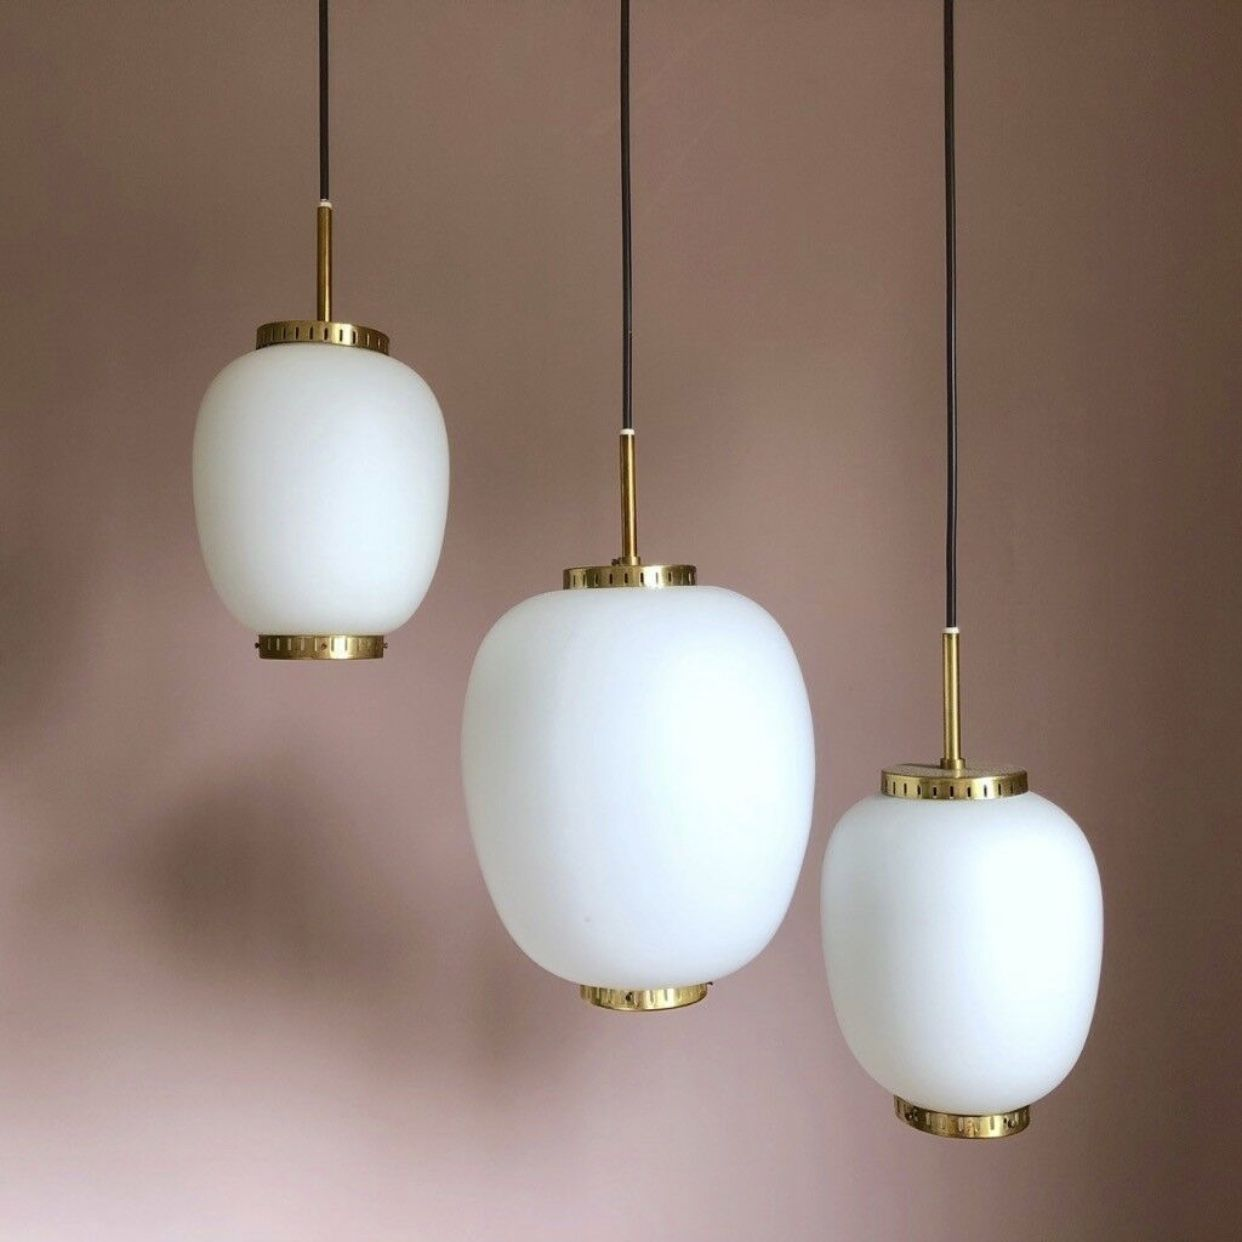 Vintage Glas Pendant Lamps From The 1960s Designed By Bent Karlby For Lyfa Not In Production Anhanger Lampen Skandinavisches Design Designklassiker